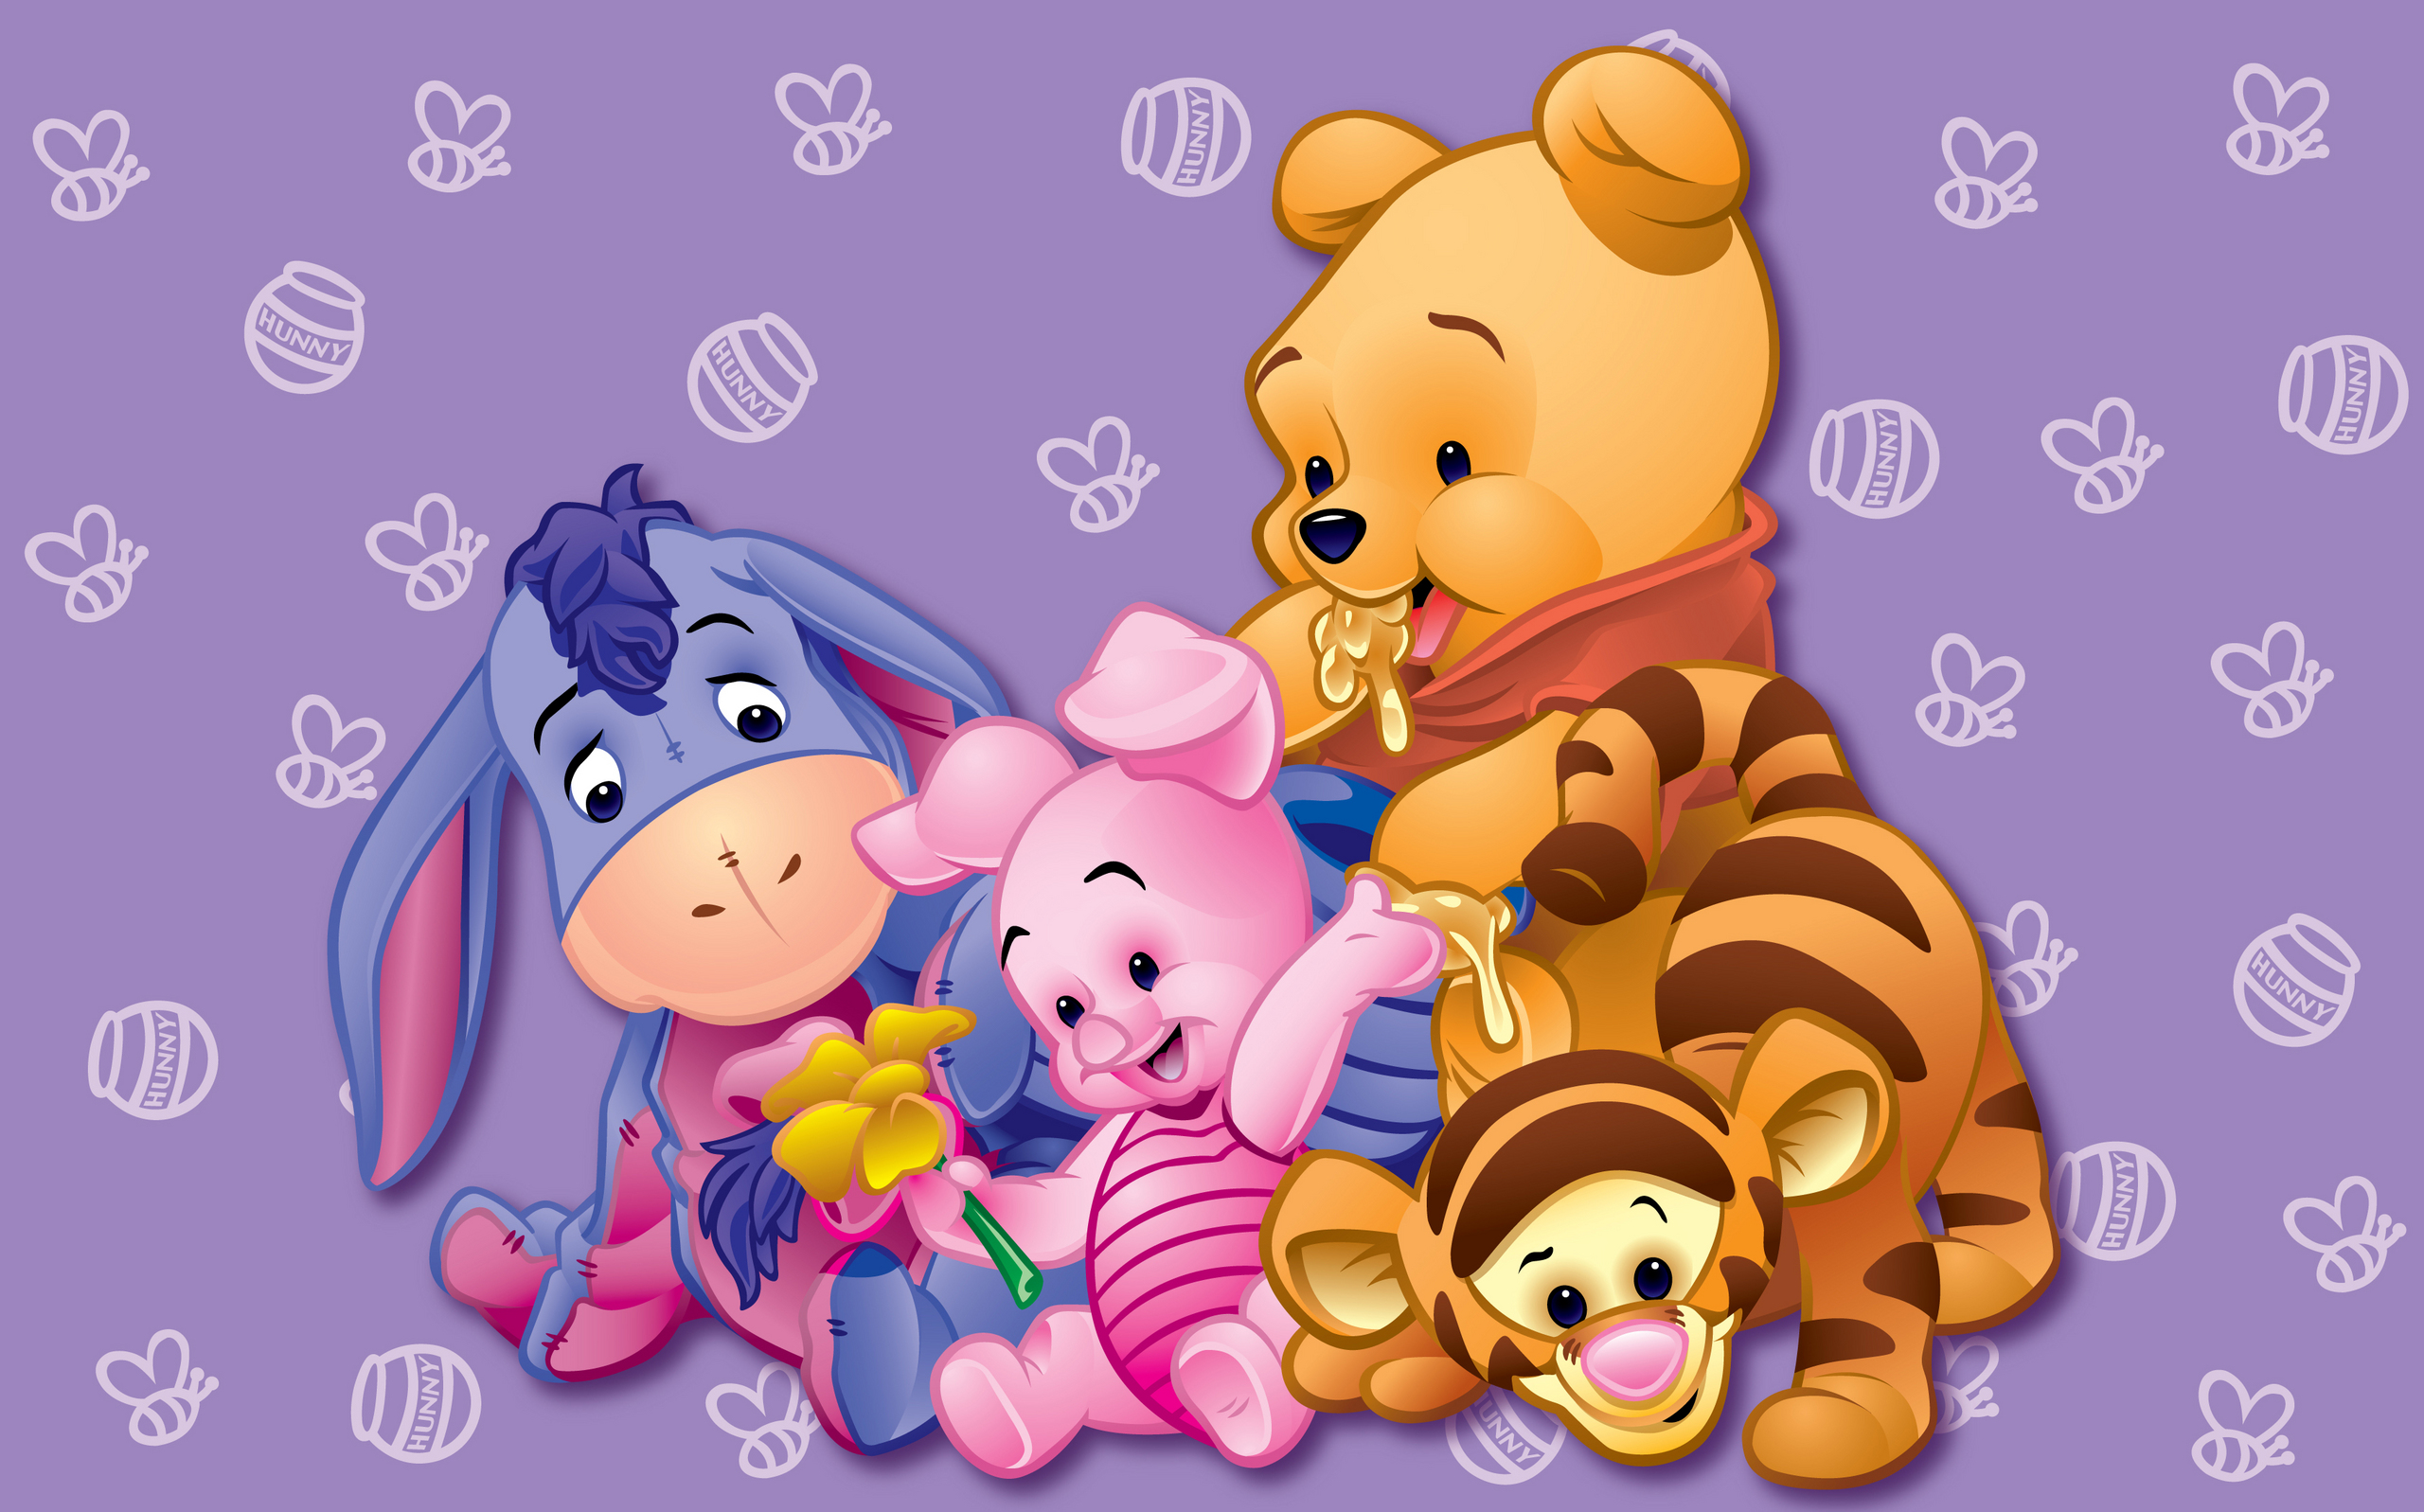 Free Download Baby Pooh Bear And Friends Wallpaper Images Amp Pictures Becuo 2560x1597 For Your Desktop Mobile Tablet Explore 78 Winnie The Pooh And Friends Wallpaper Winnie The Pooh